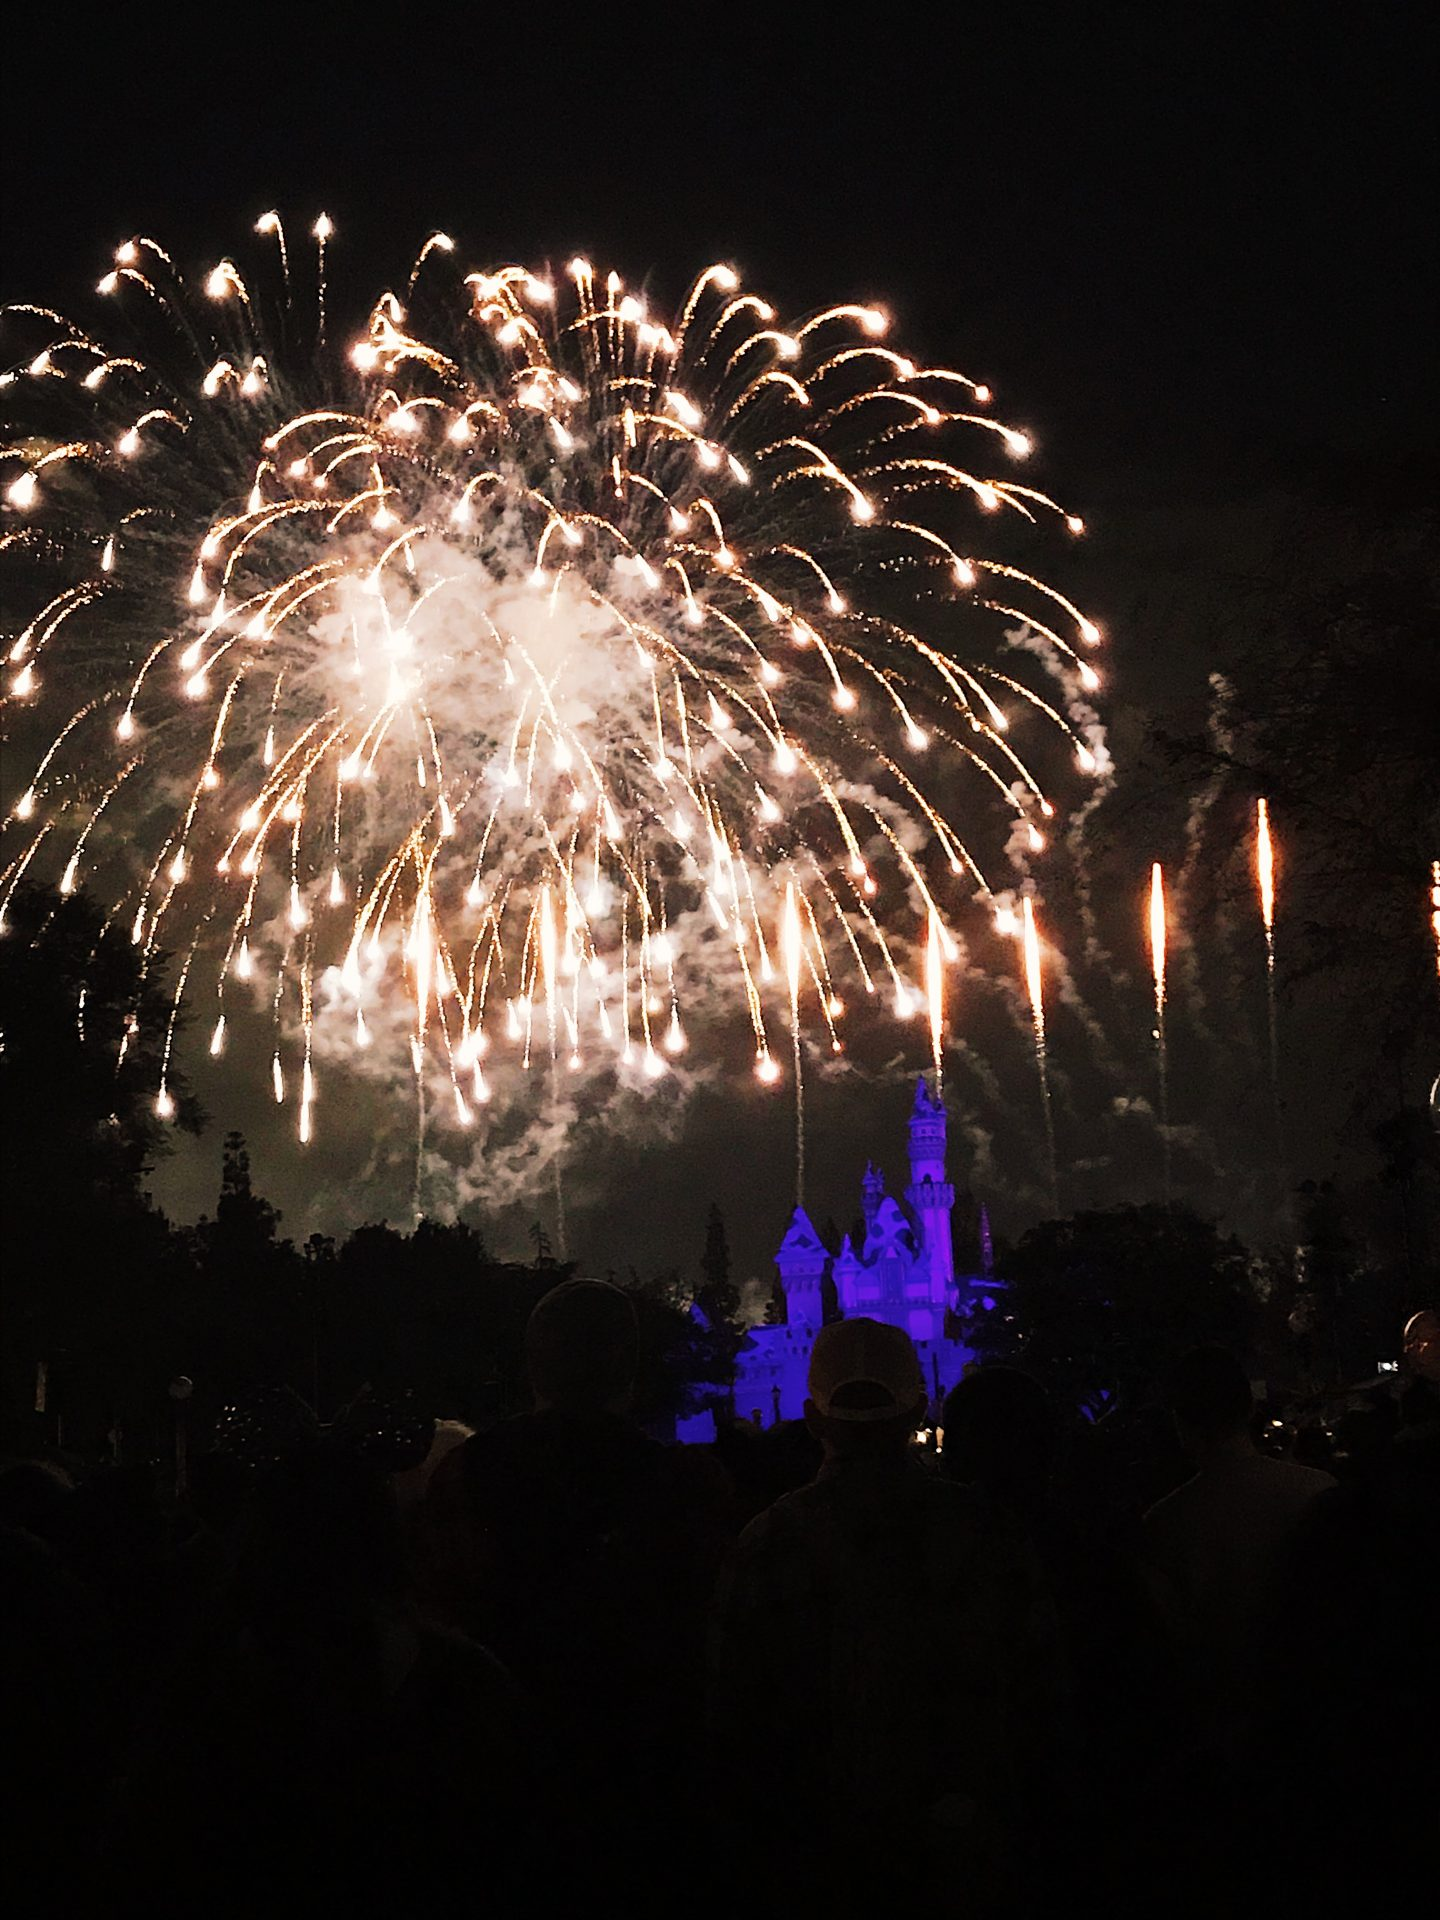 Watching the fireworks at Cinderella's castle at Disneyland in Los Angeles